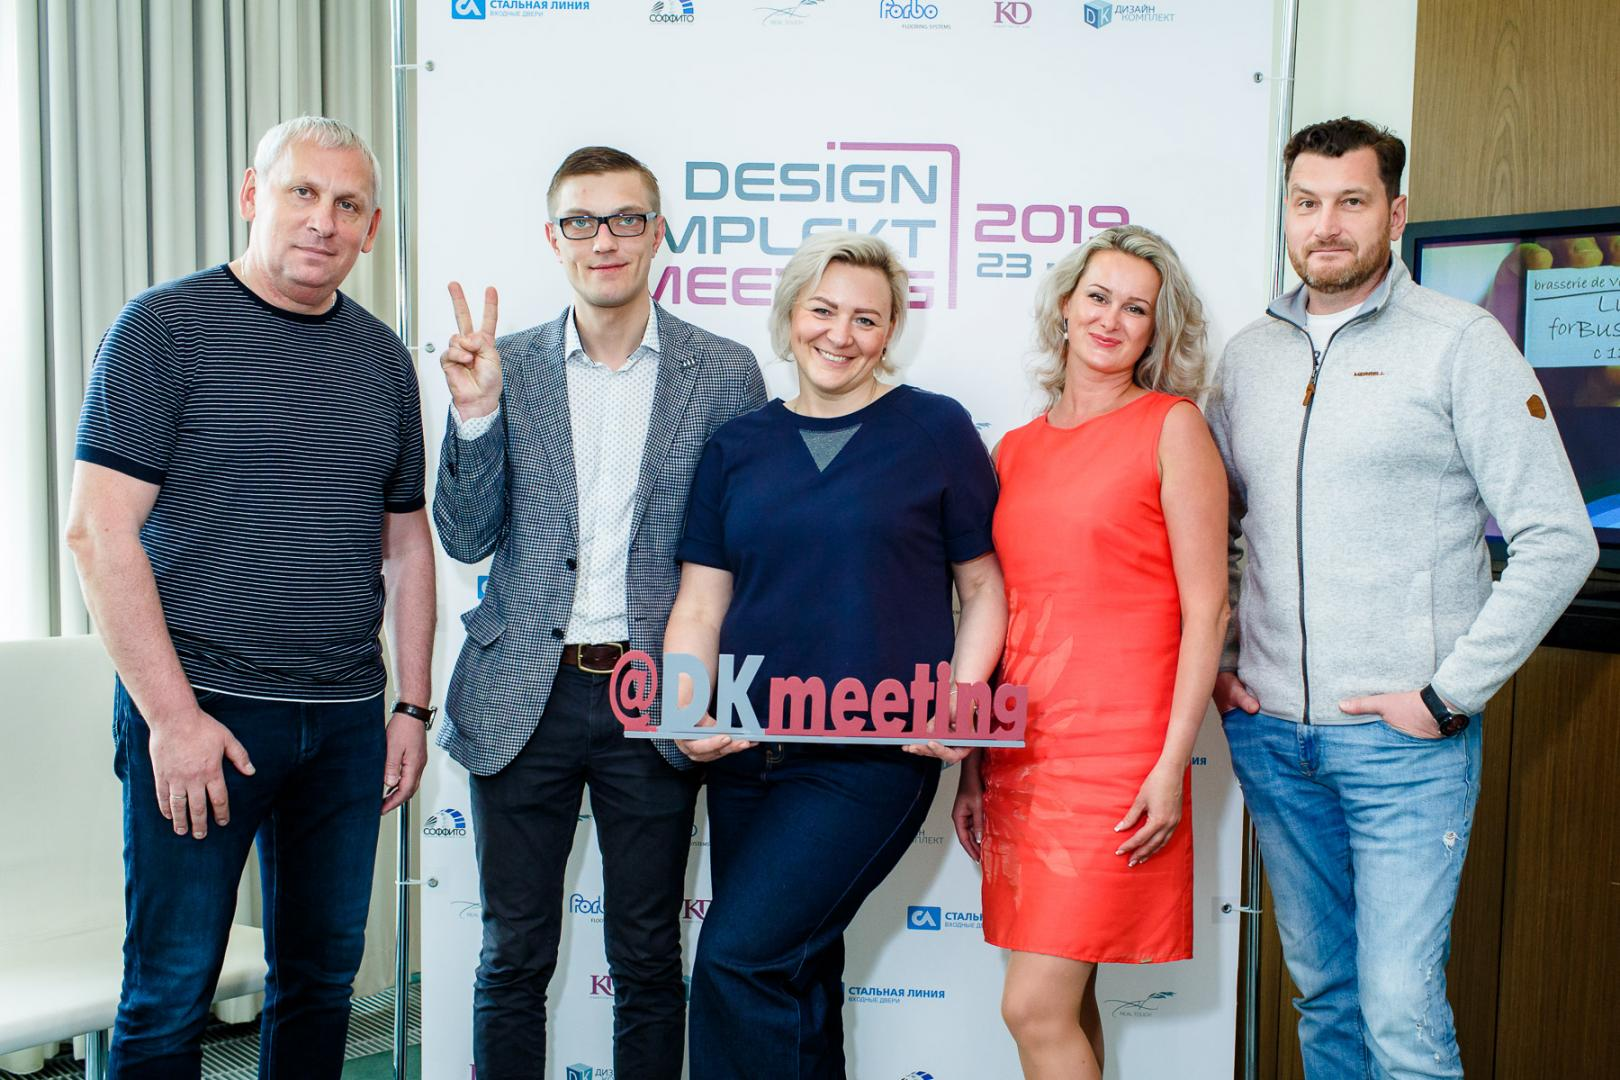 DESIGN KOMPLEKT MEETING, 23 мая 2019 г.